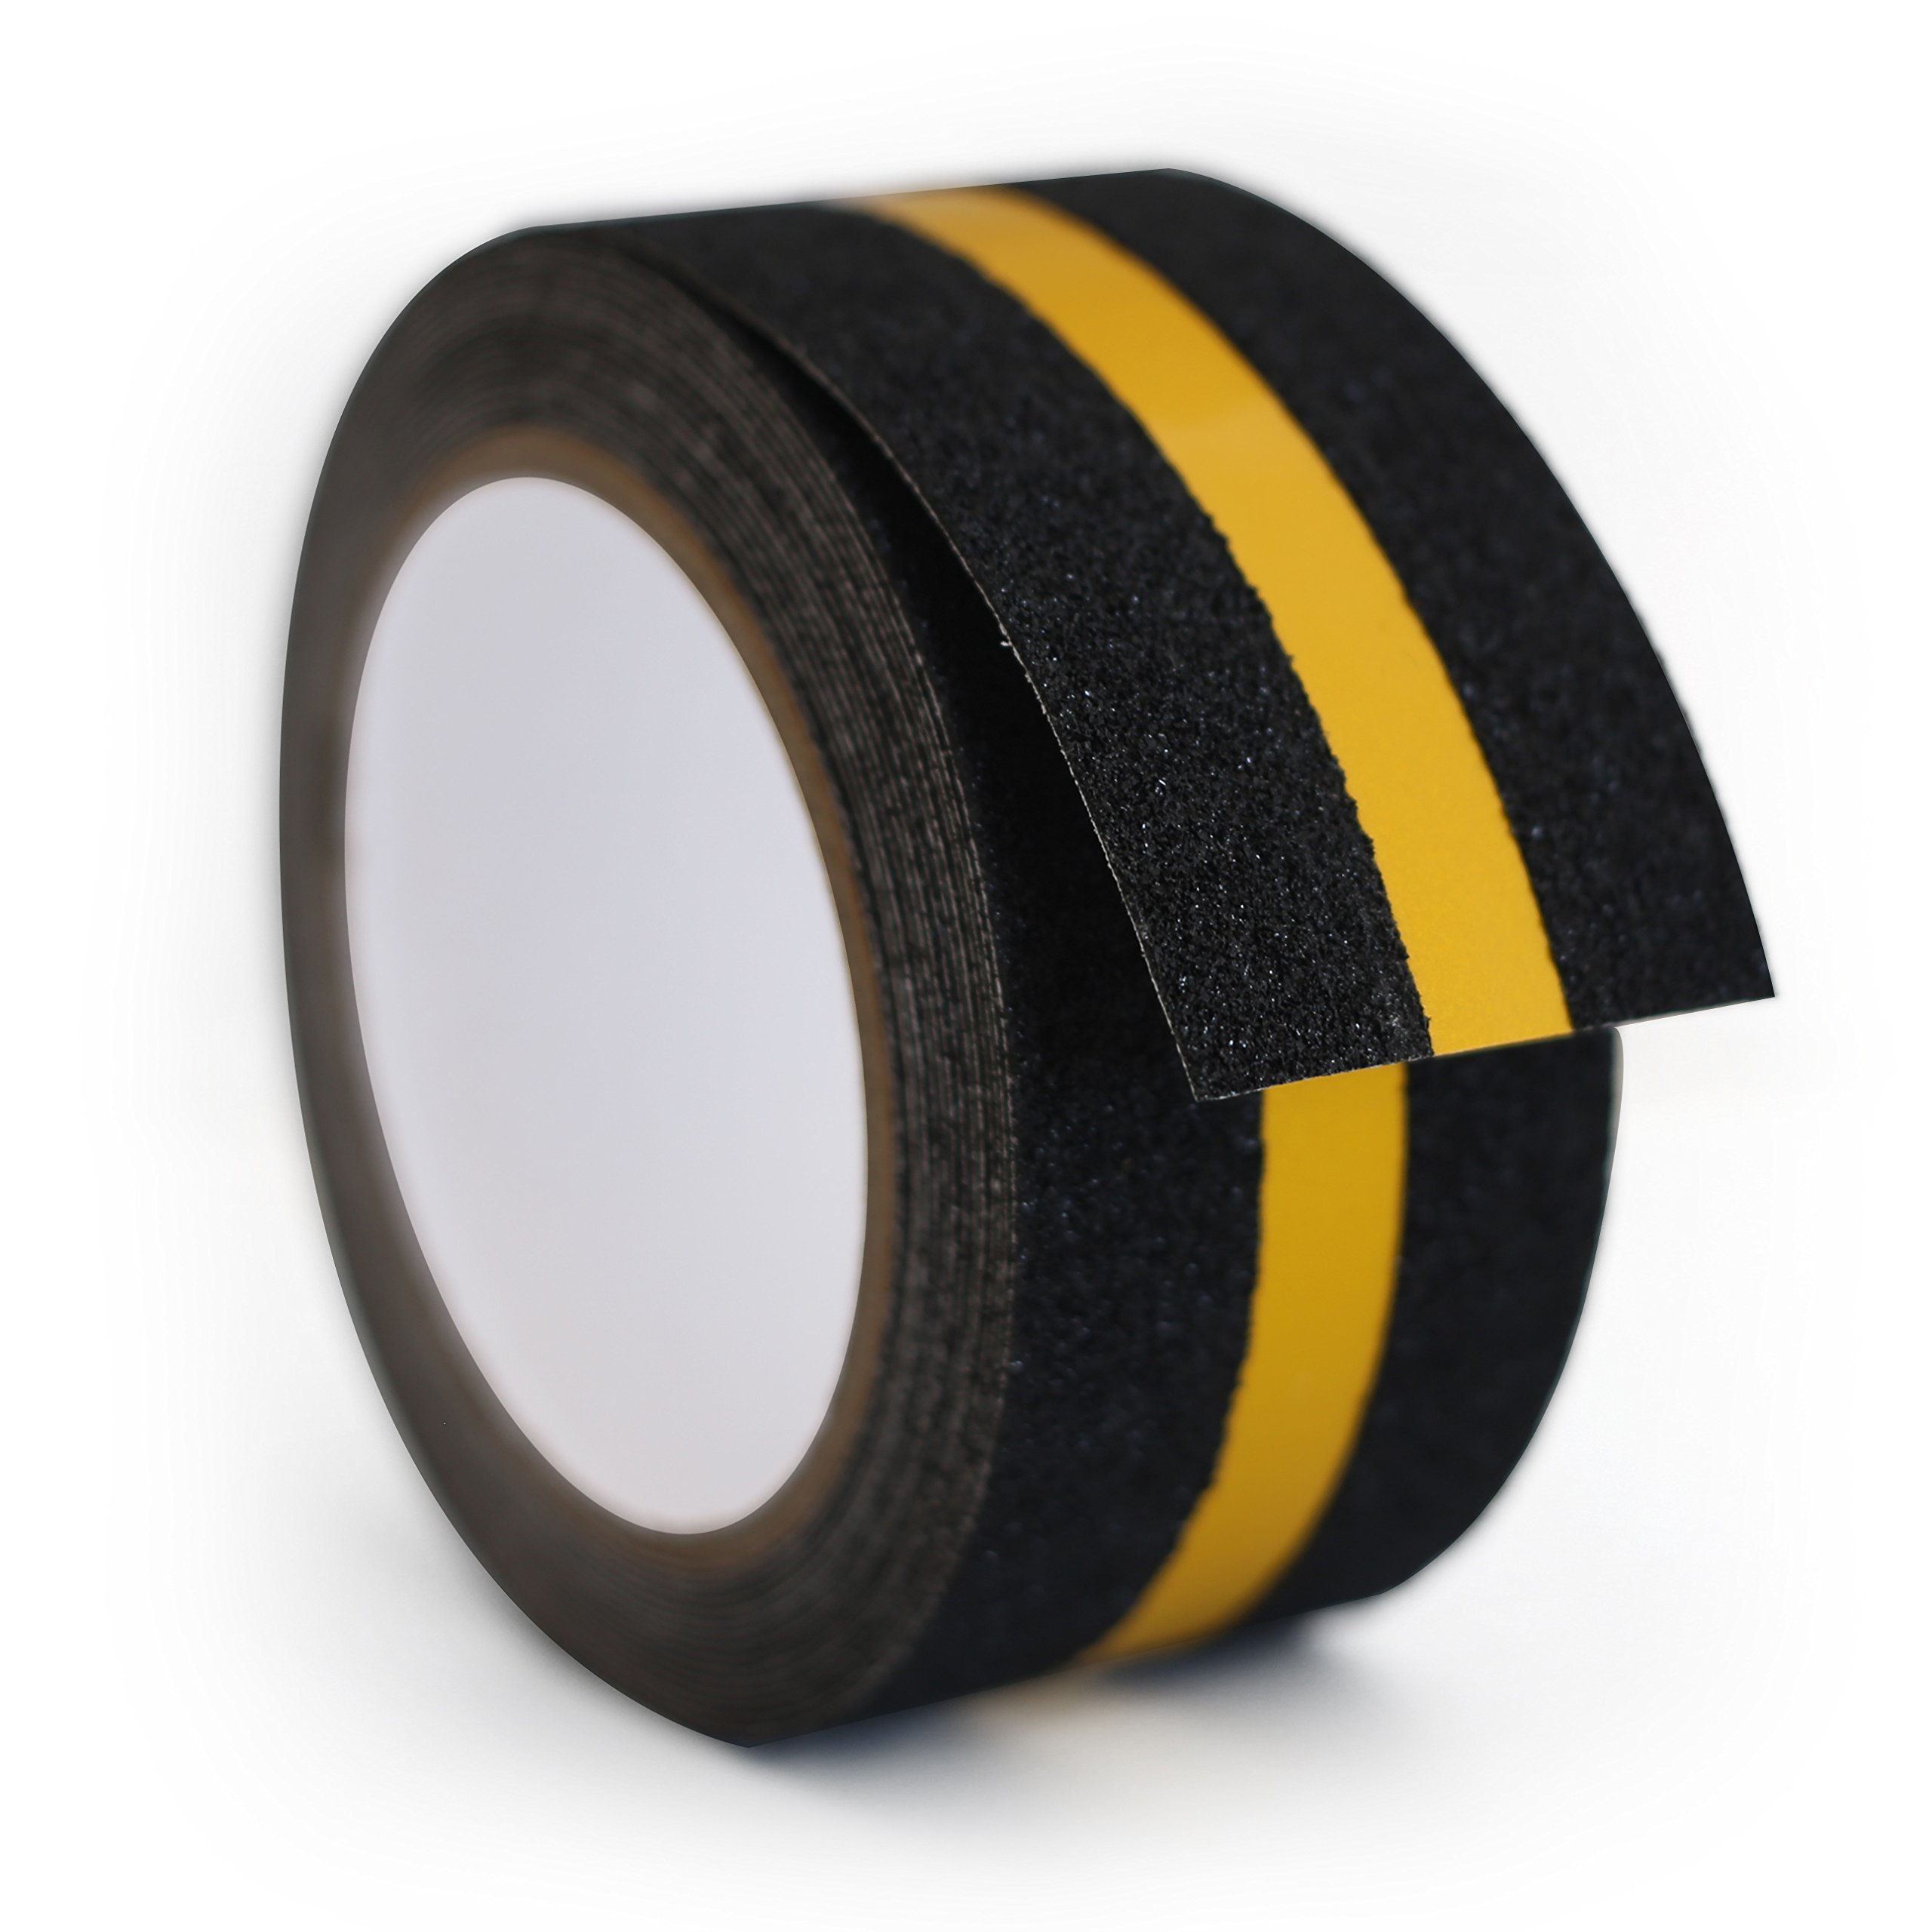 LifeGrip Waterproof Antislip Safety Tape - Reflective - Black/Yellow - Highest Traction - Indoor or Outdoor (2'' X 15')